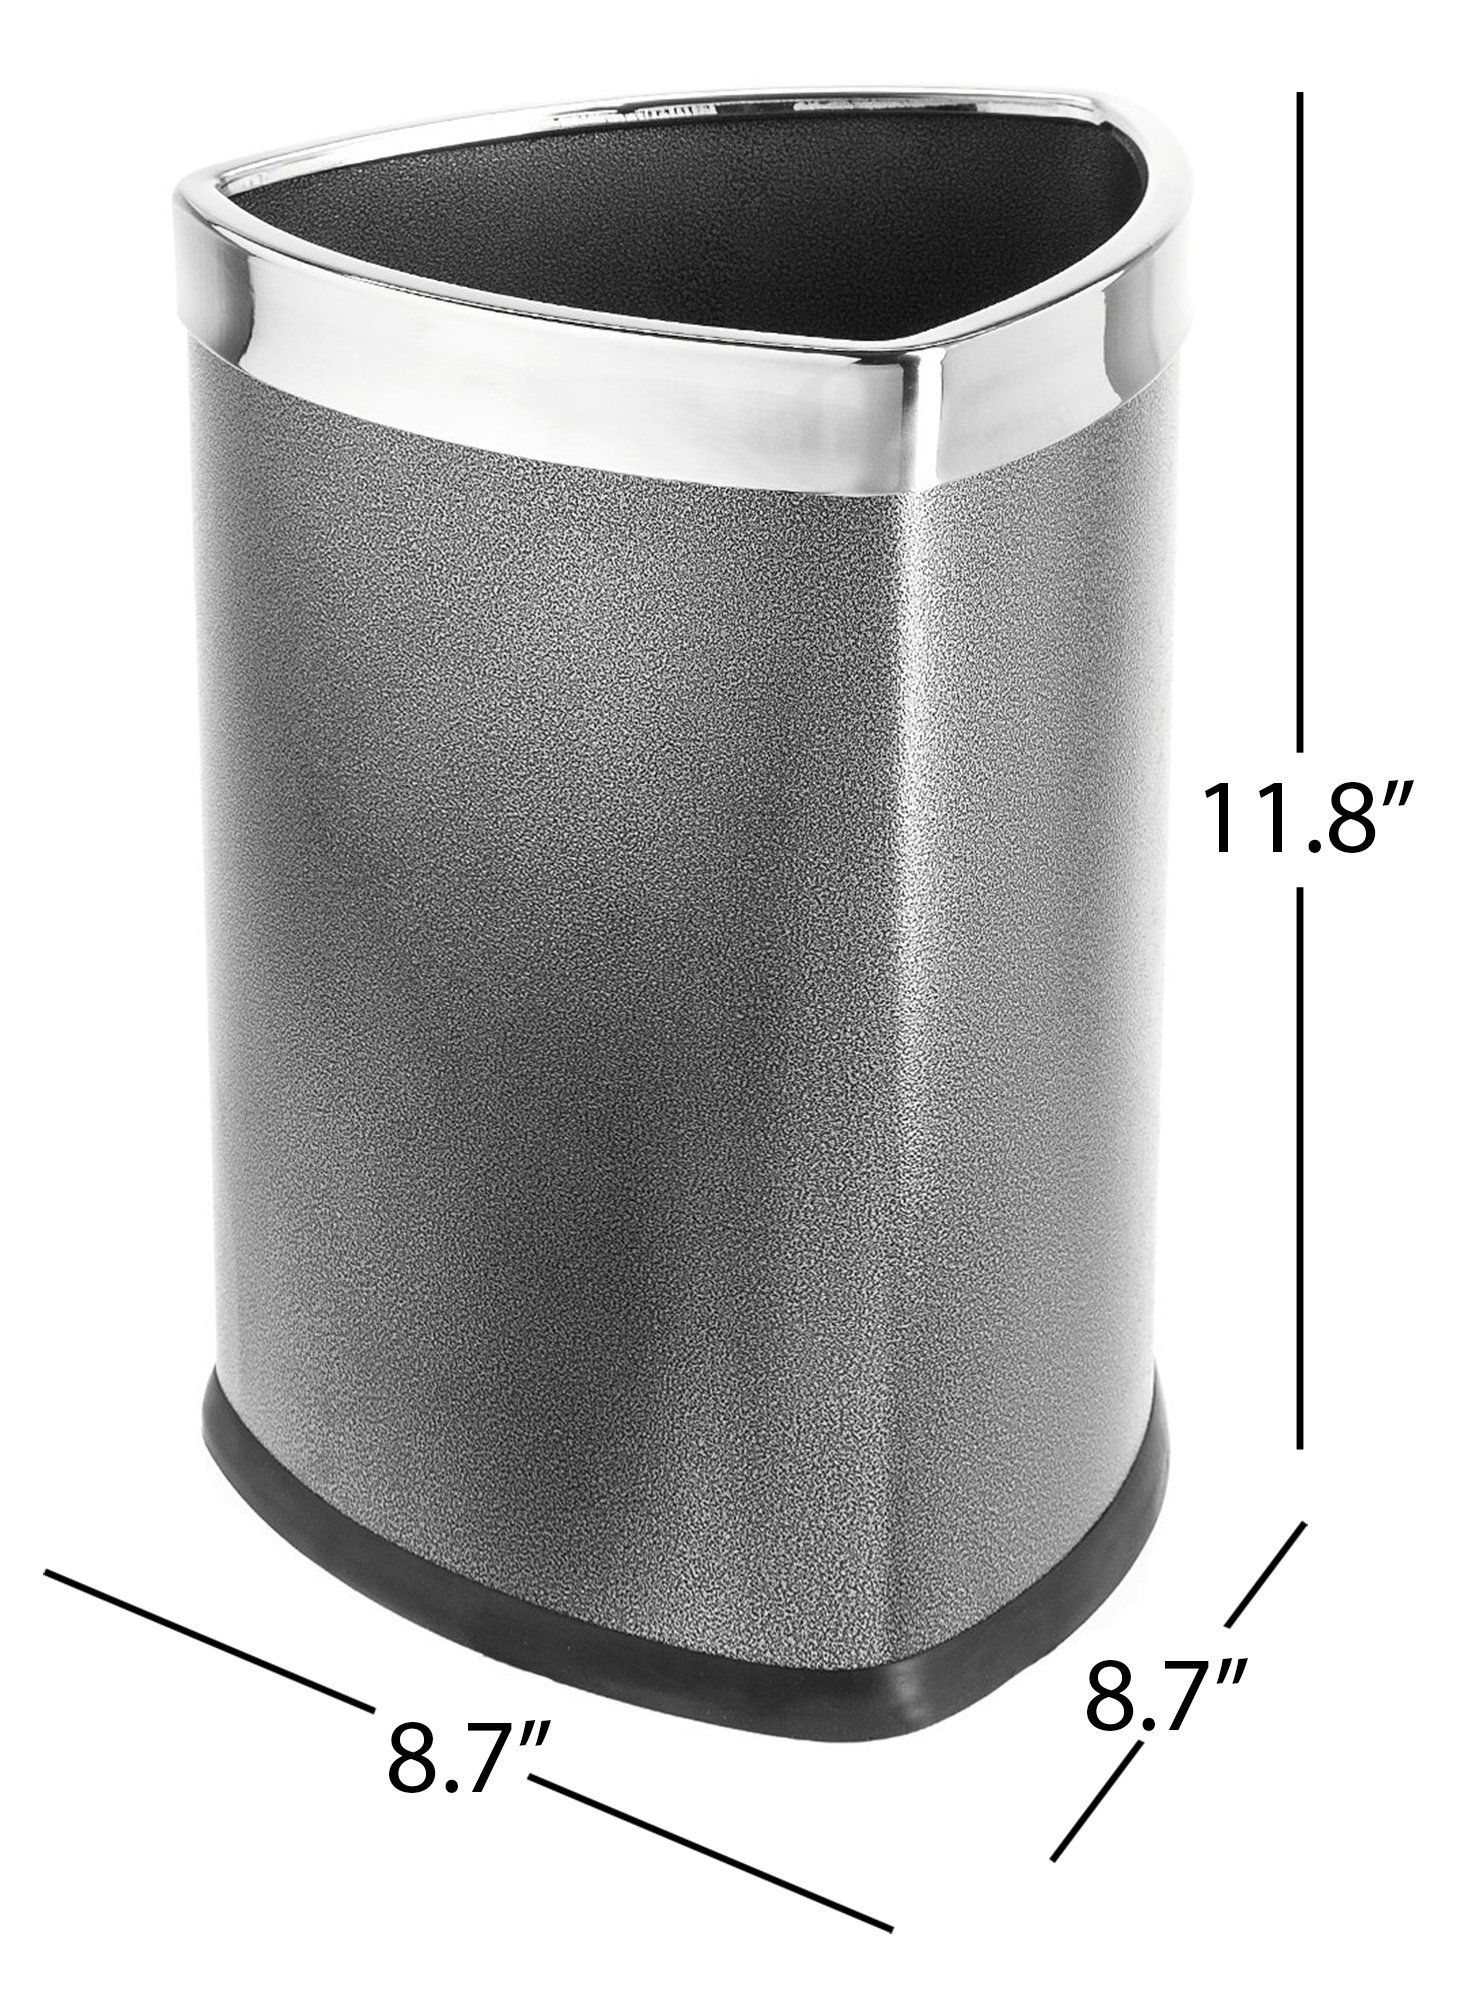 Bennett Magnificent Designed''Triangle Shape'' Wastebasket, Small Office Open Top Metal Trash Can, (Grey)